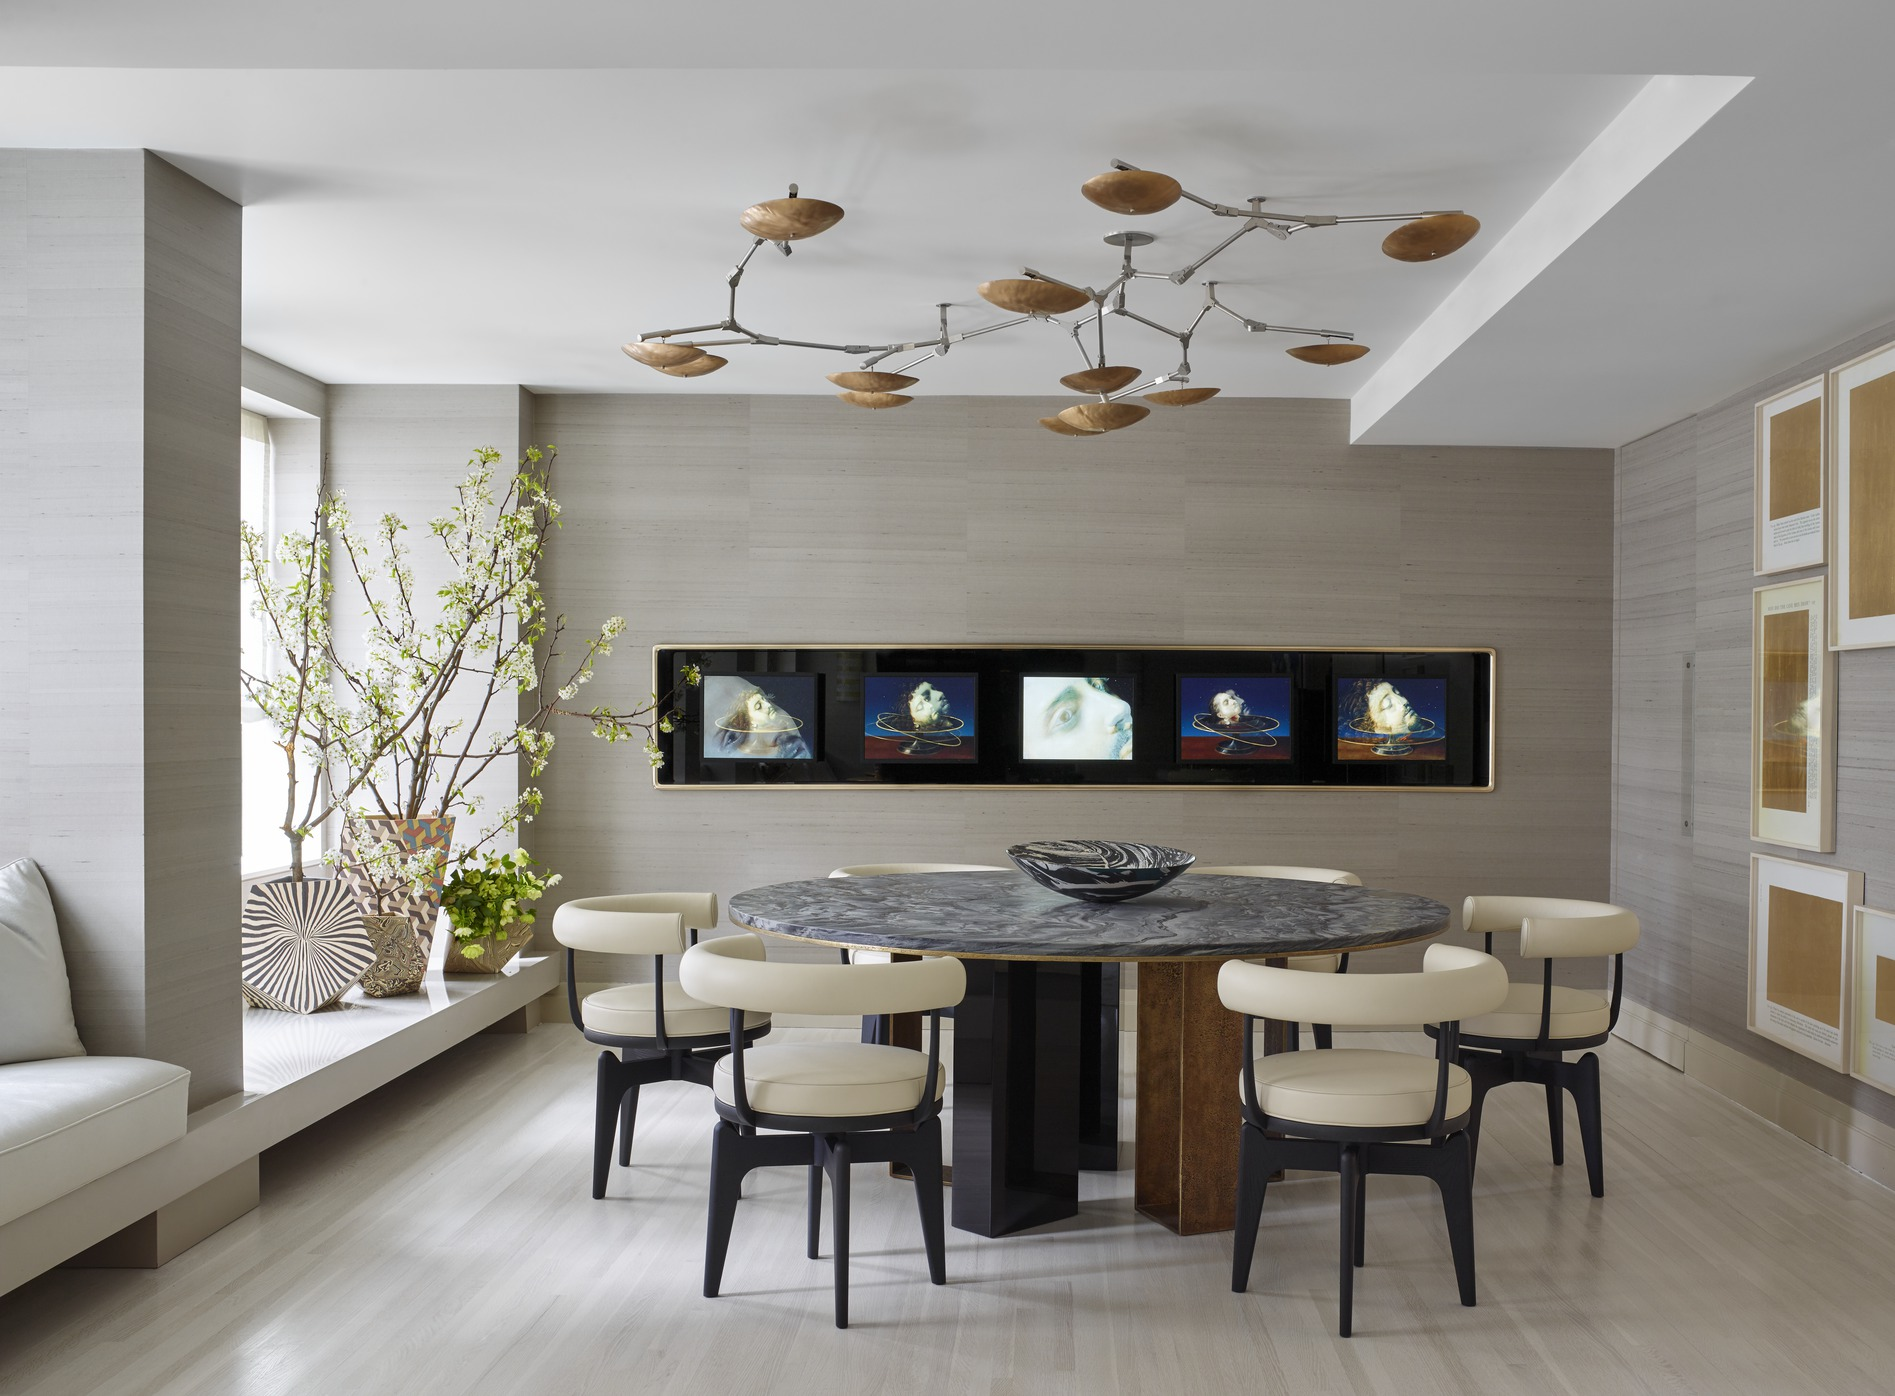 25 modern dining room decorating ideas contemporary for Modern lounge decor ideas